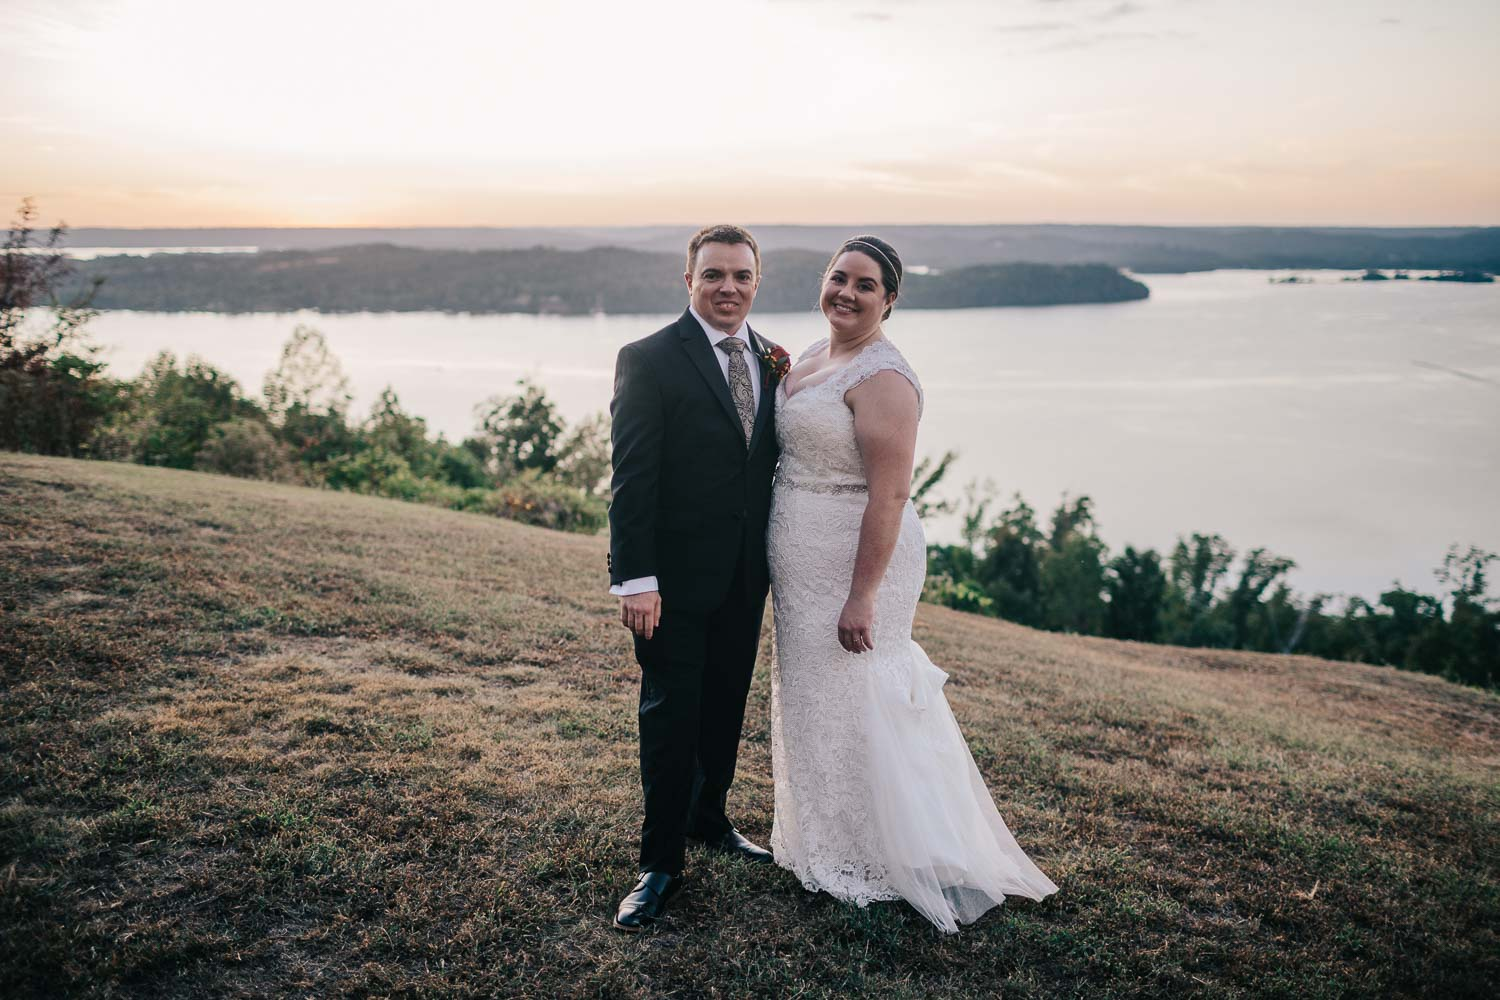 Lake Guntersville Alabama wedding photography by David A. Smith of DSmithImages Wedding Photography, Portraits, and Events